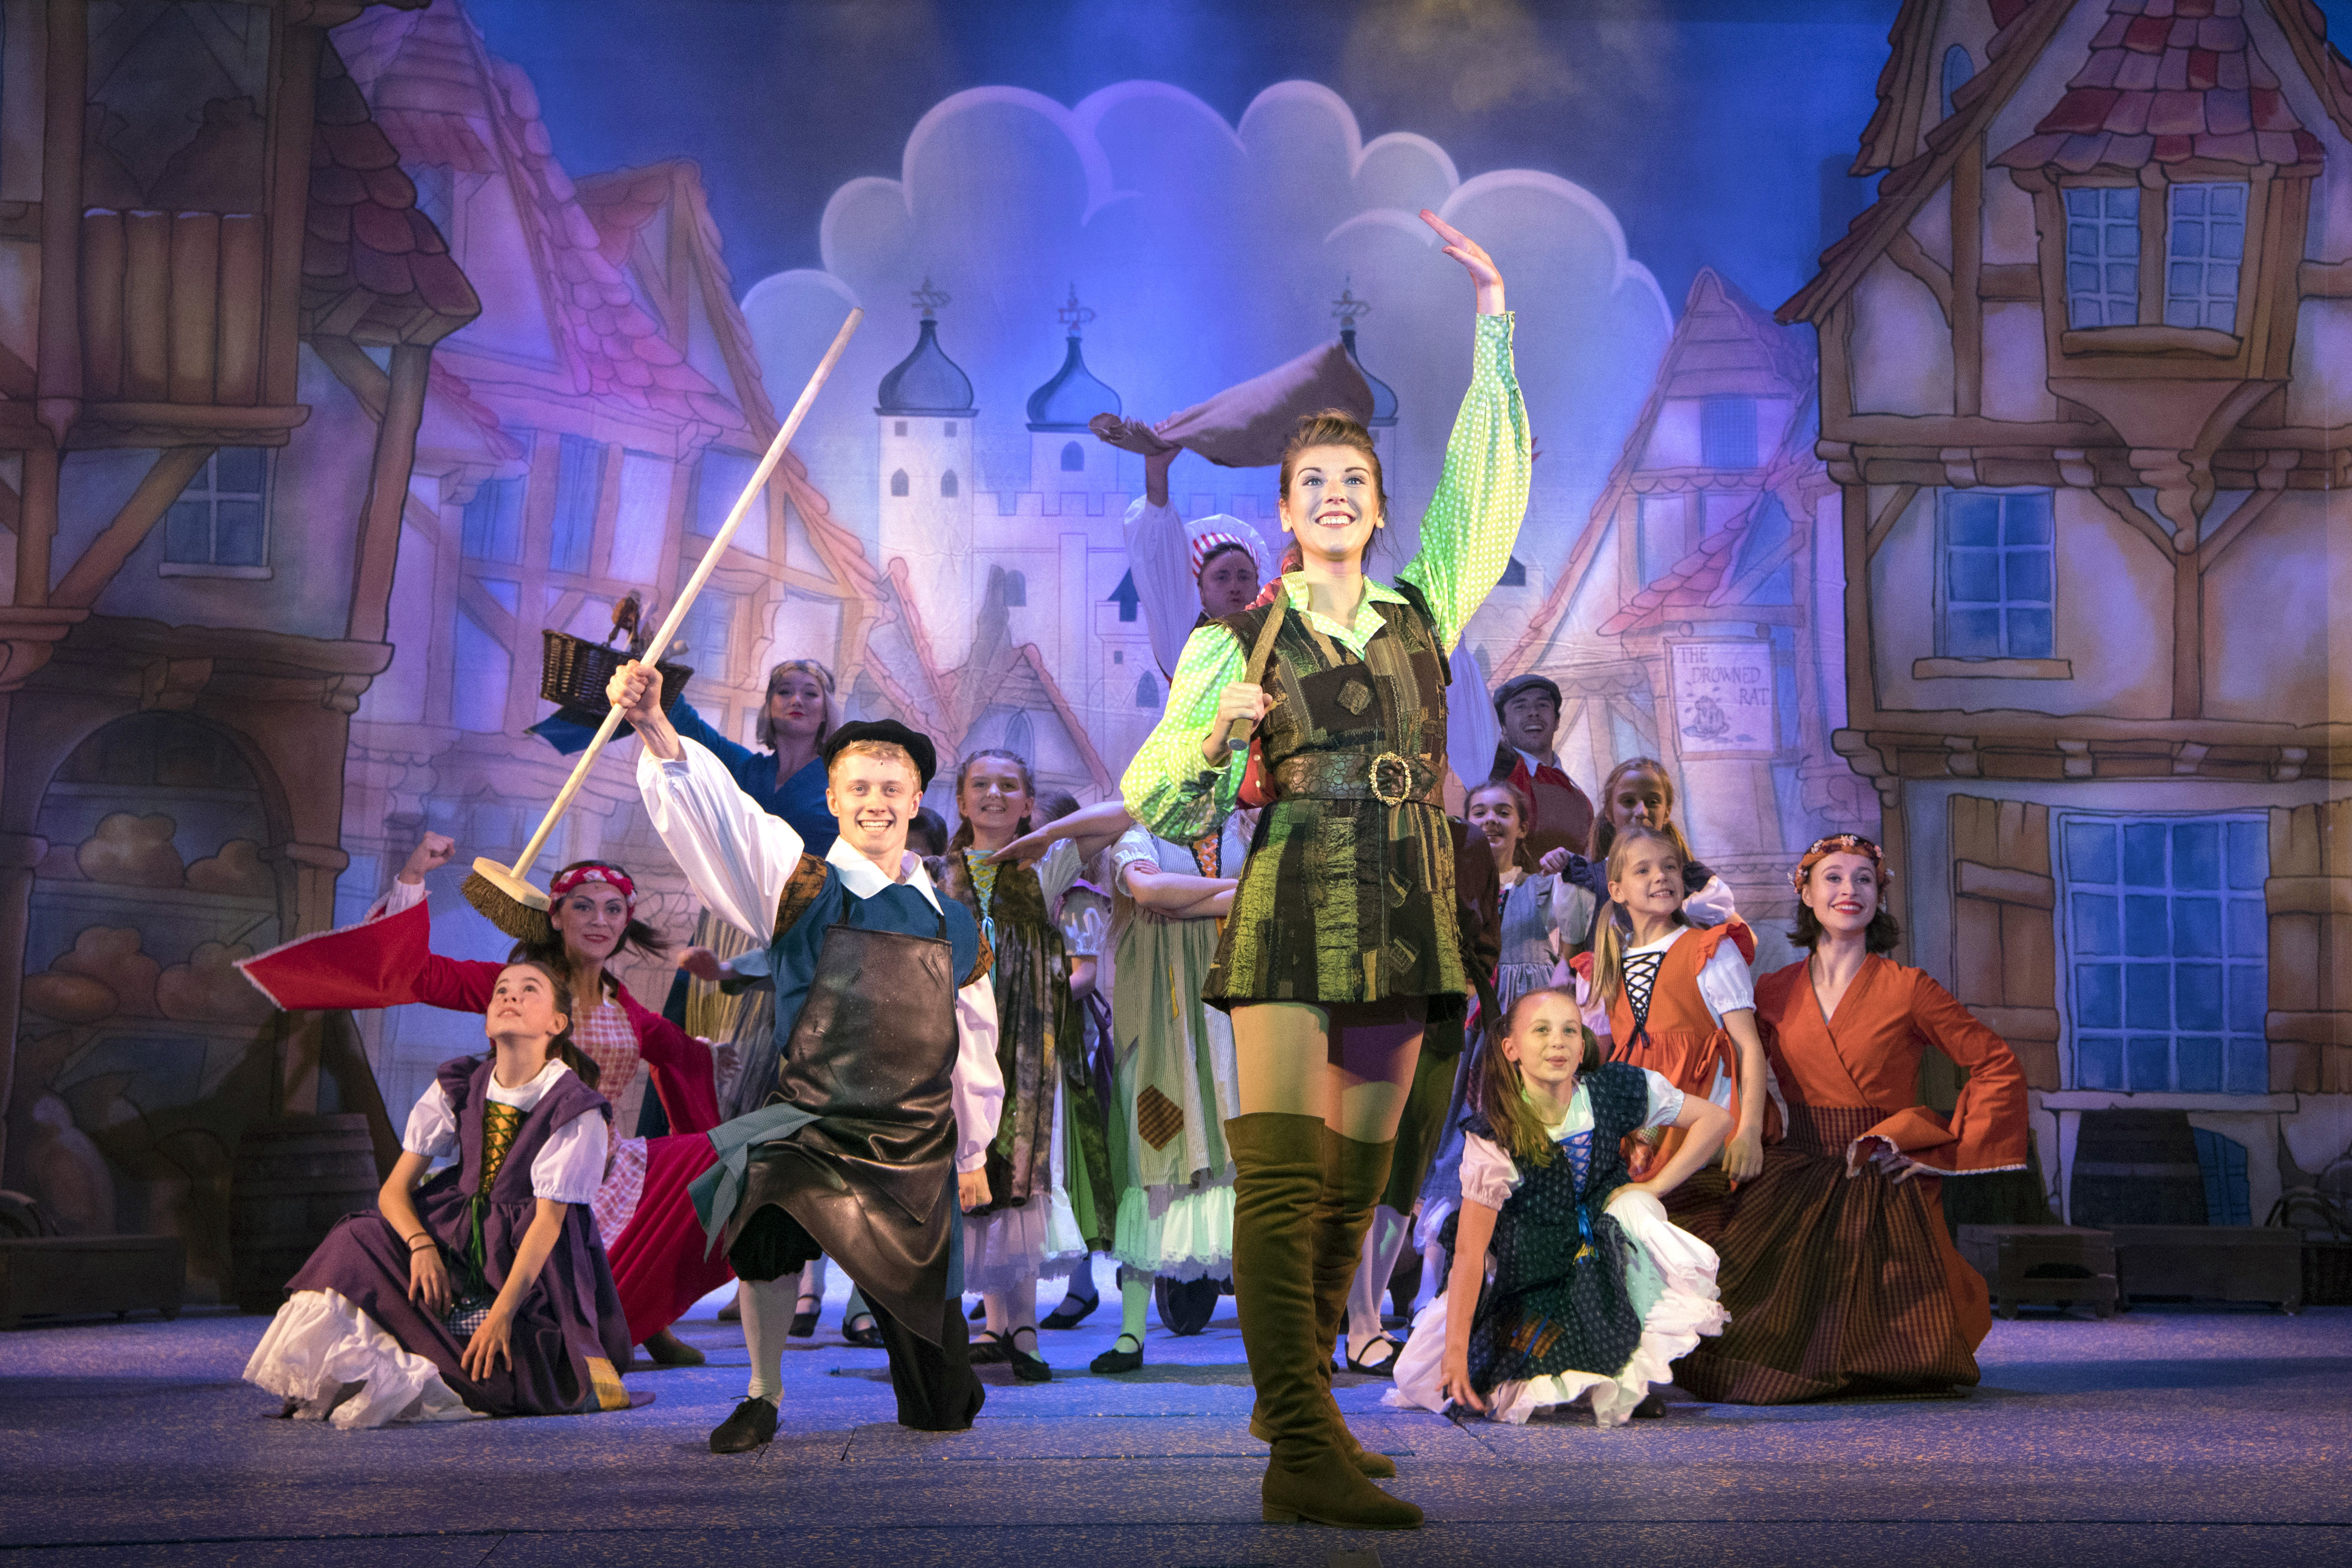 Cast of Dick Whittington - Dick Whittington holds hand up in the air